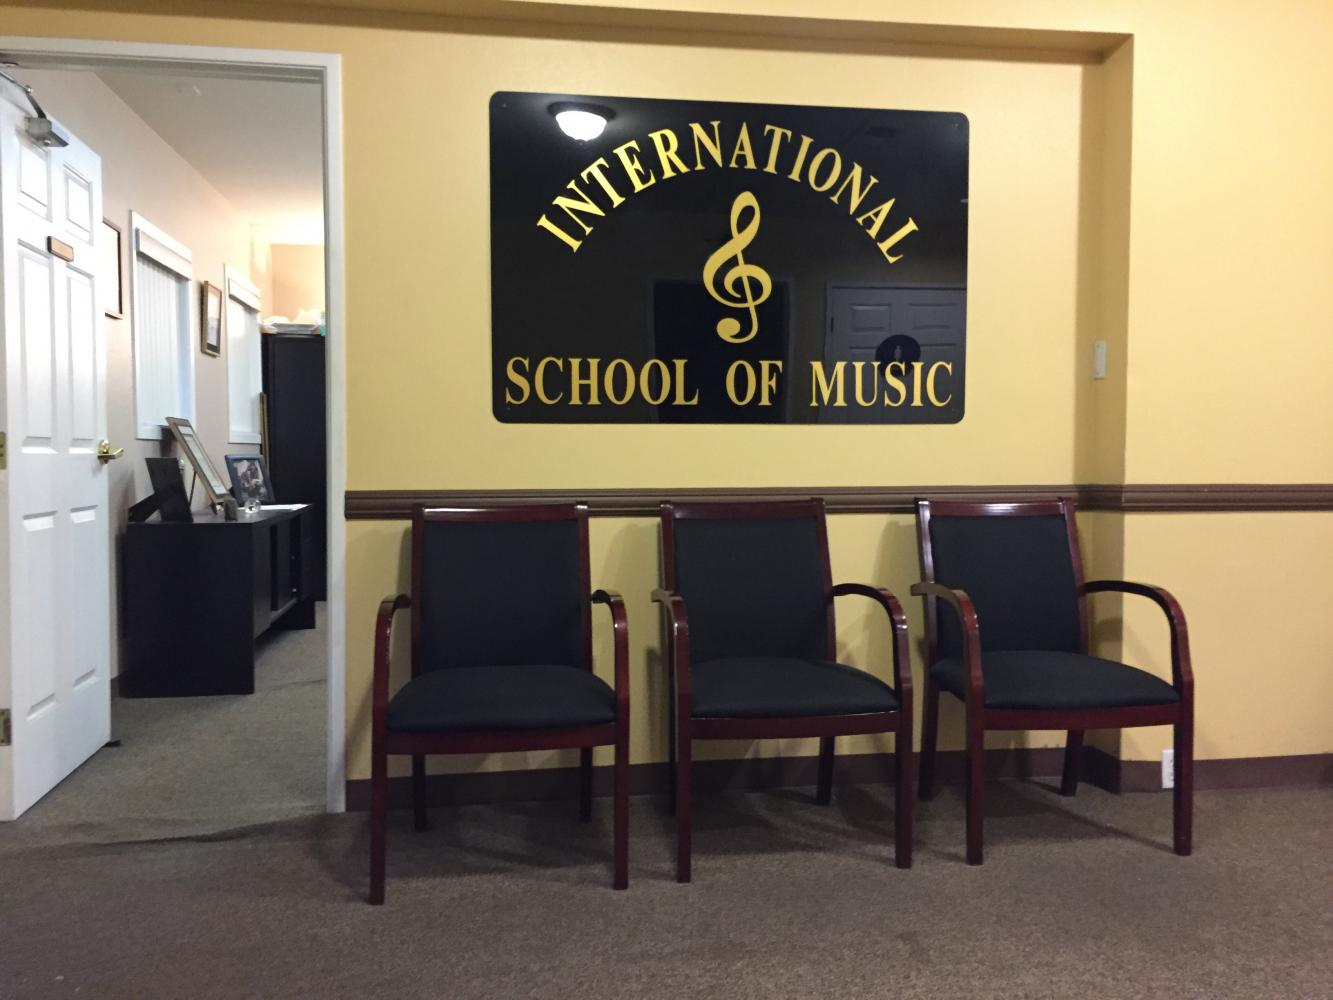 The waiting room at the International School of Music in Glendale.